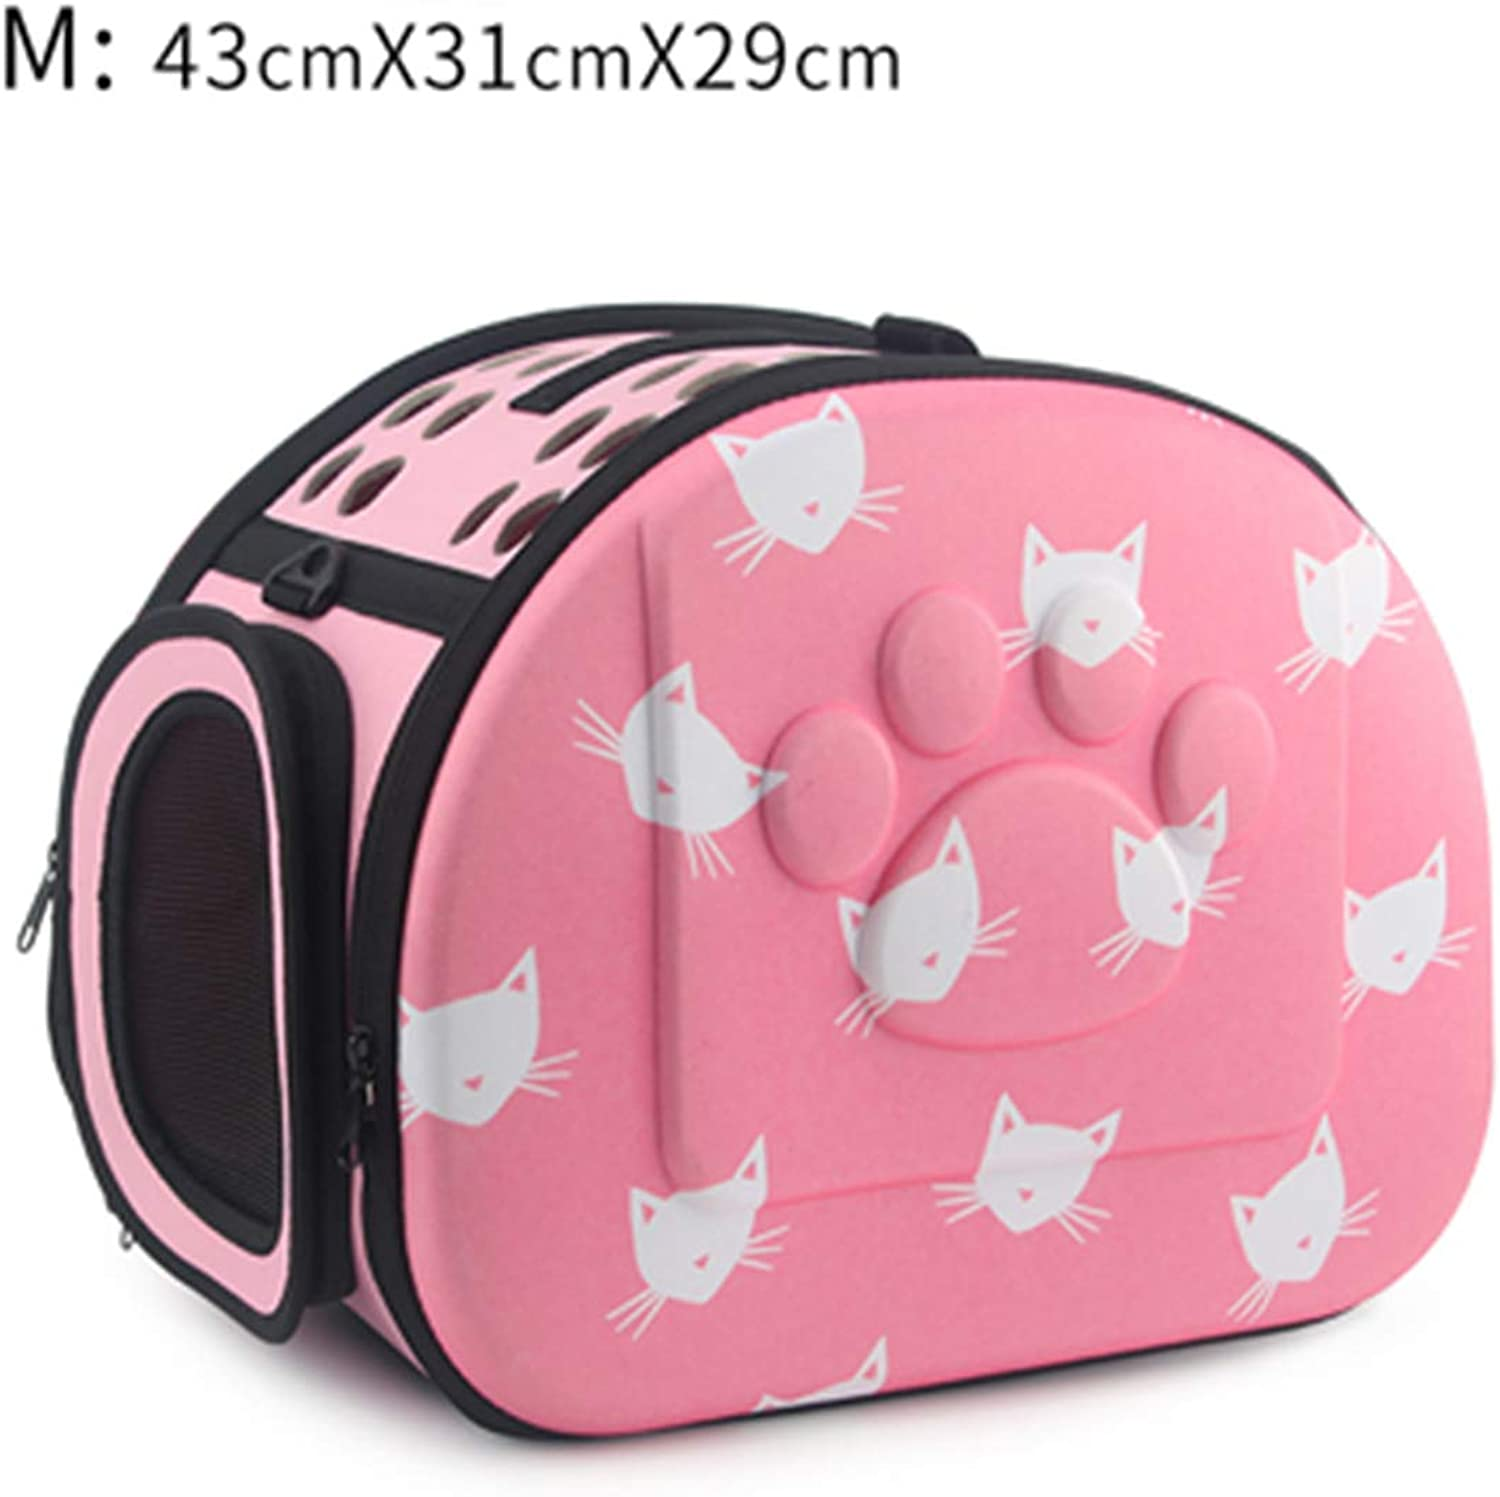 PETFDH Cat Pattern bluee Dog Carrier Bag Portable Cats Handbag Foldable Travel Bag Puppy Carrying Shoulder Pet Bags Pink 43x31x29cm m